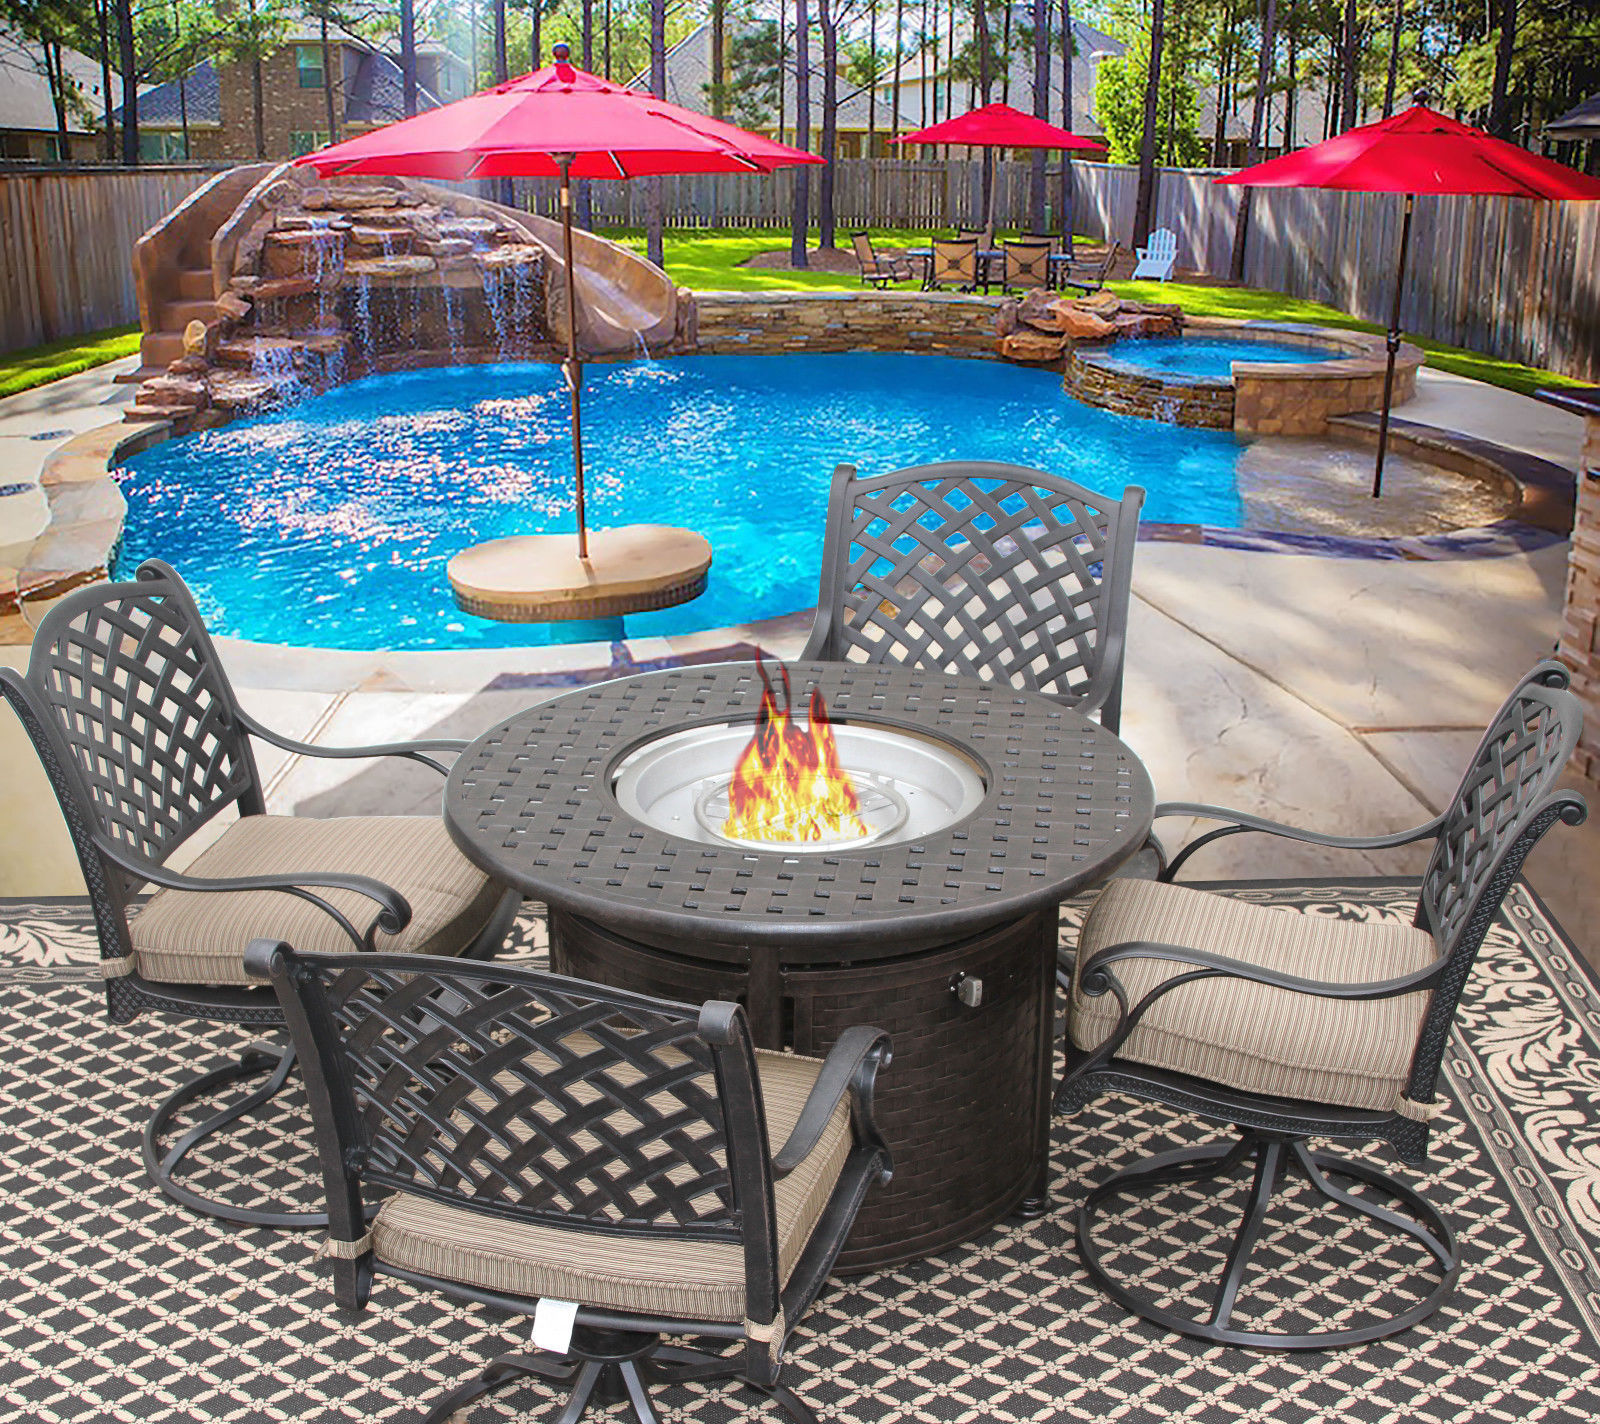 5 PC NASSAU OUTDOOR PATIO DINING SET FOR 4 PERSON WITH ROUND FIRE TABLE / PIT